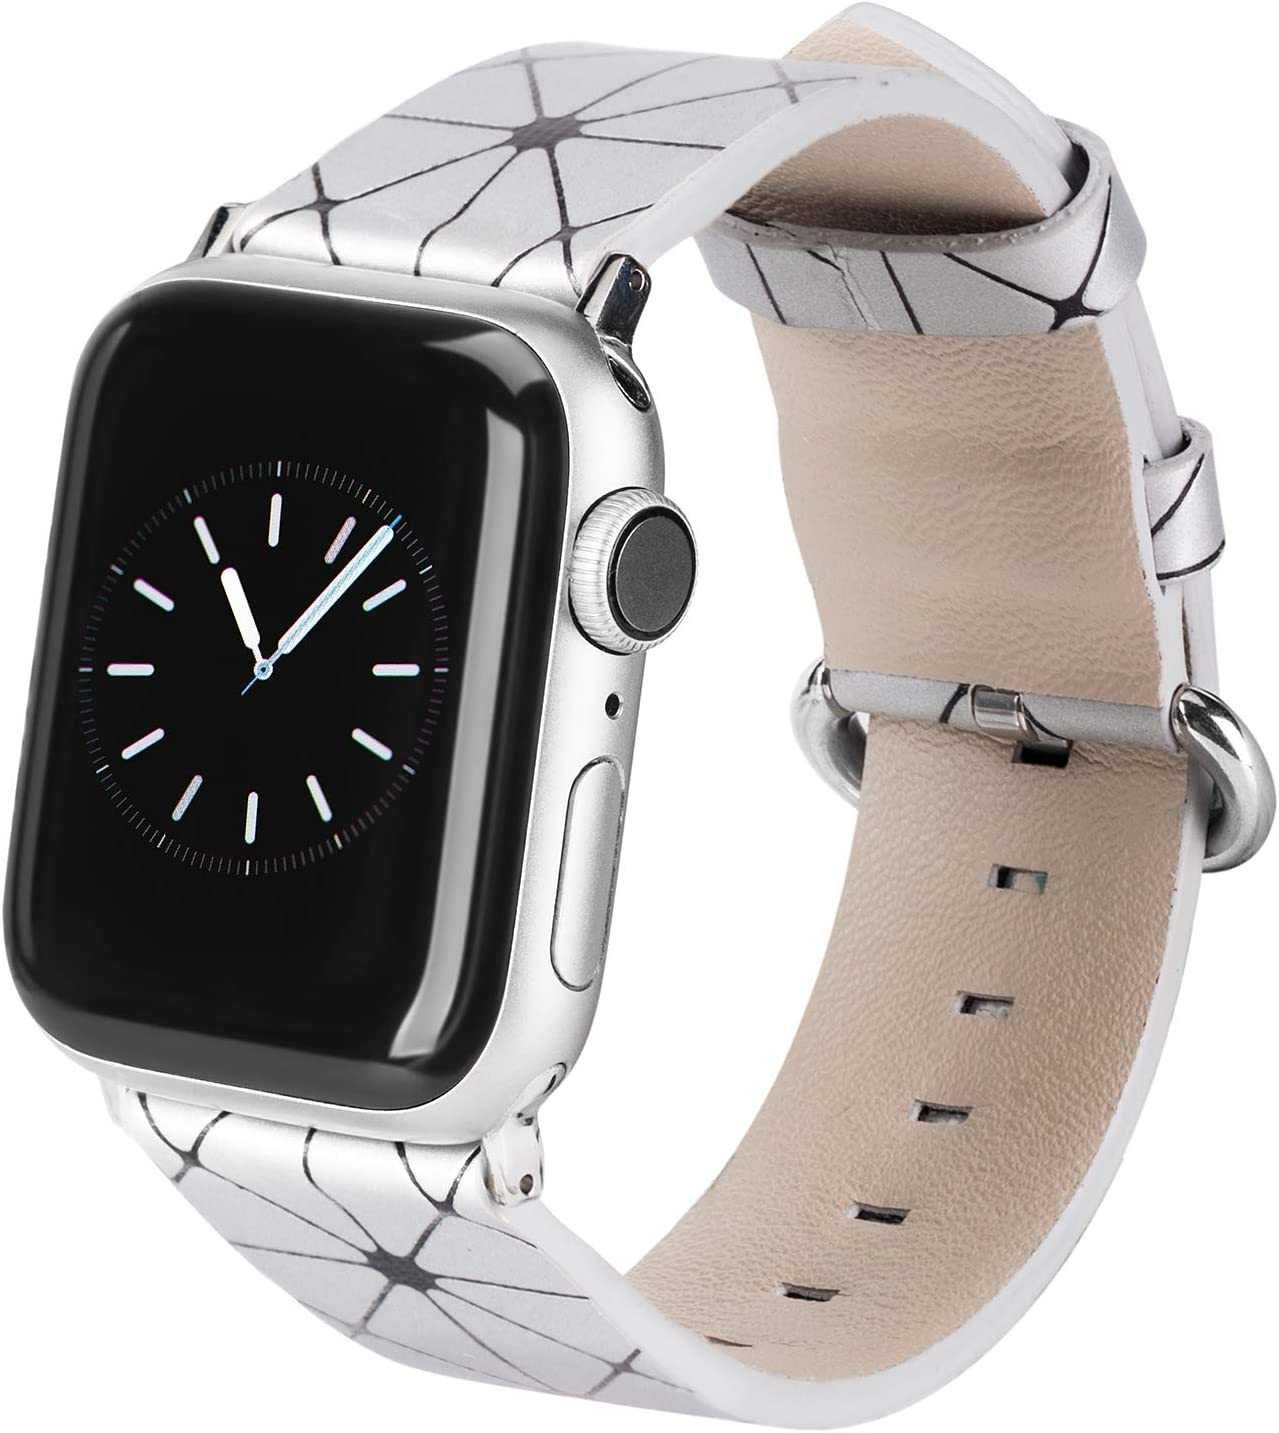 TOYOUTHS Compatible with Apple Watch Band 38mm Rose Gold iWatch Womens Mens 40mm Watchband Leisure Replacement Wristband Soft Leather Strap Bracelet Series 5 4 3 2 1